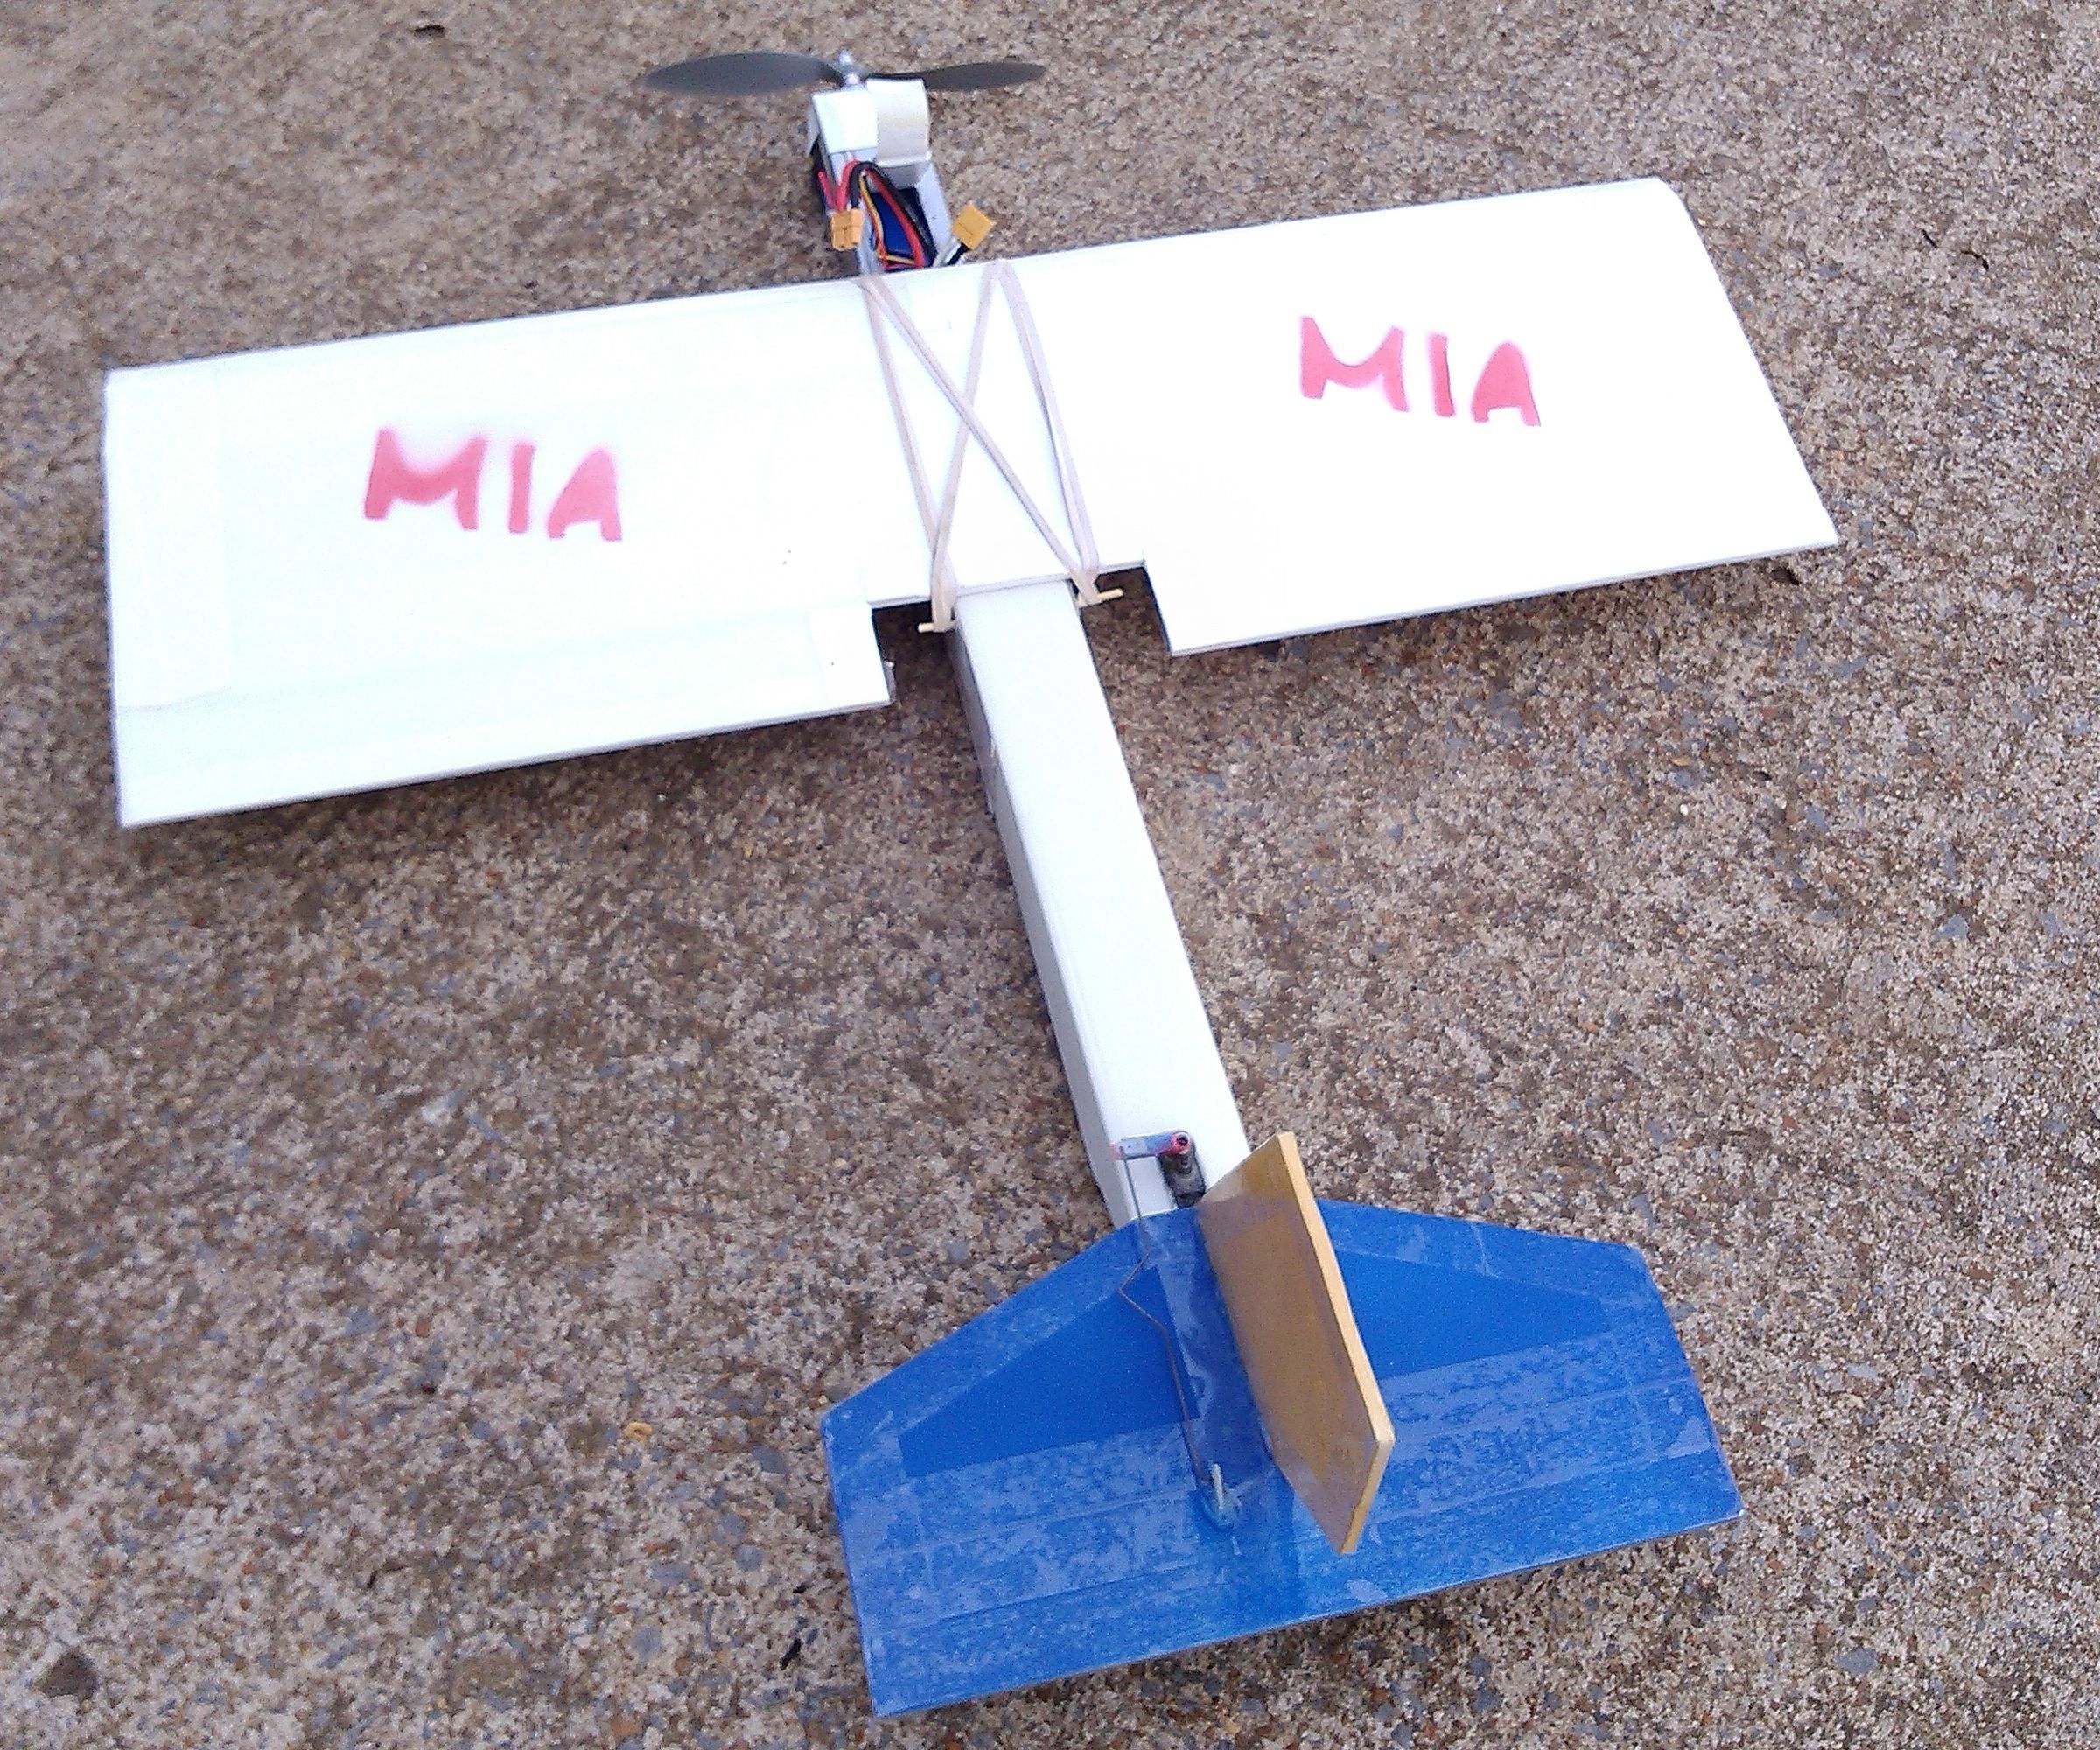 Complete Guide to Building Your First RC Foamboard Plane